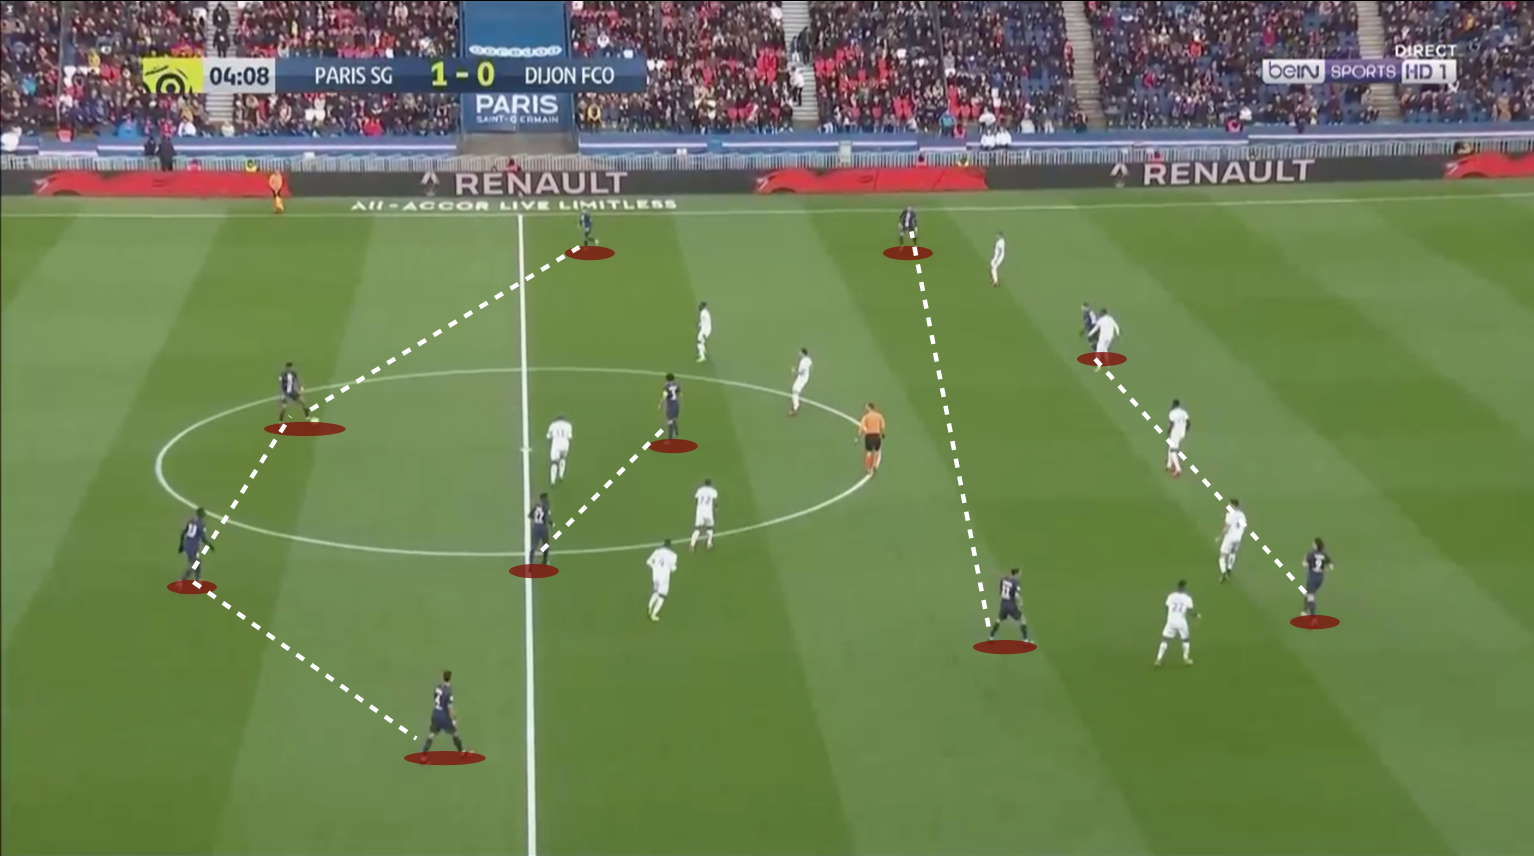 Is there such thing as too many attackers? Paris Saint-Germain's 4-4-2 vs 4-3-3 - tactical analysis tactics